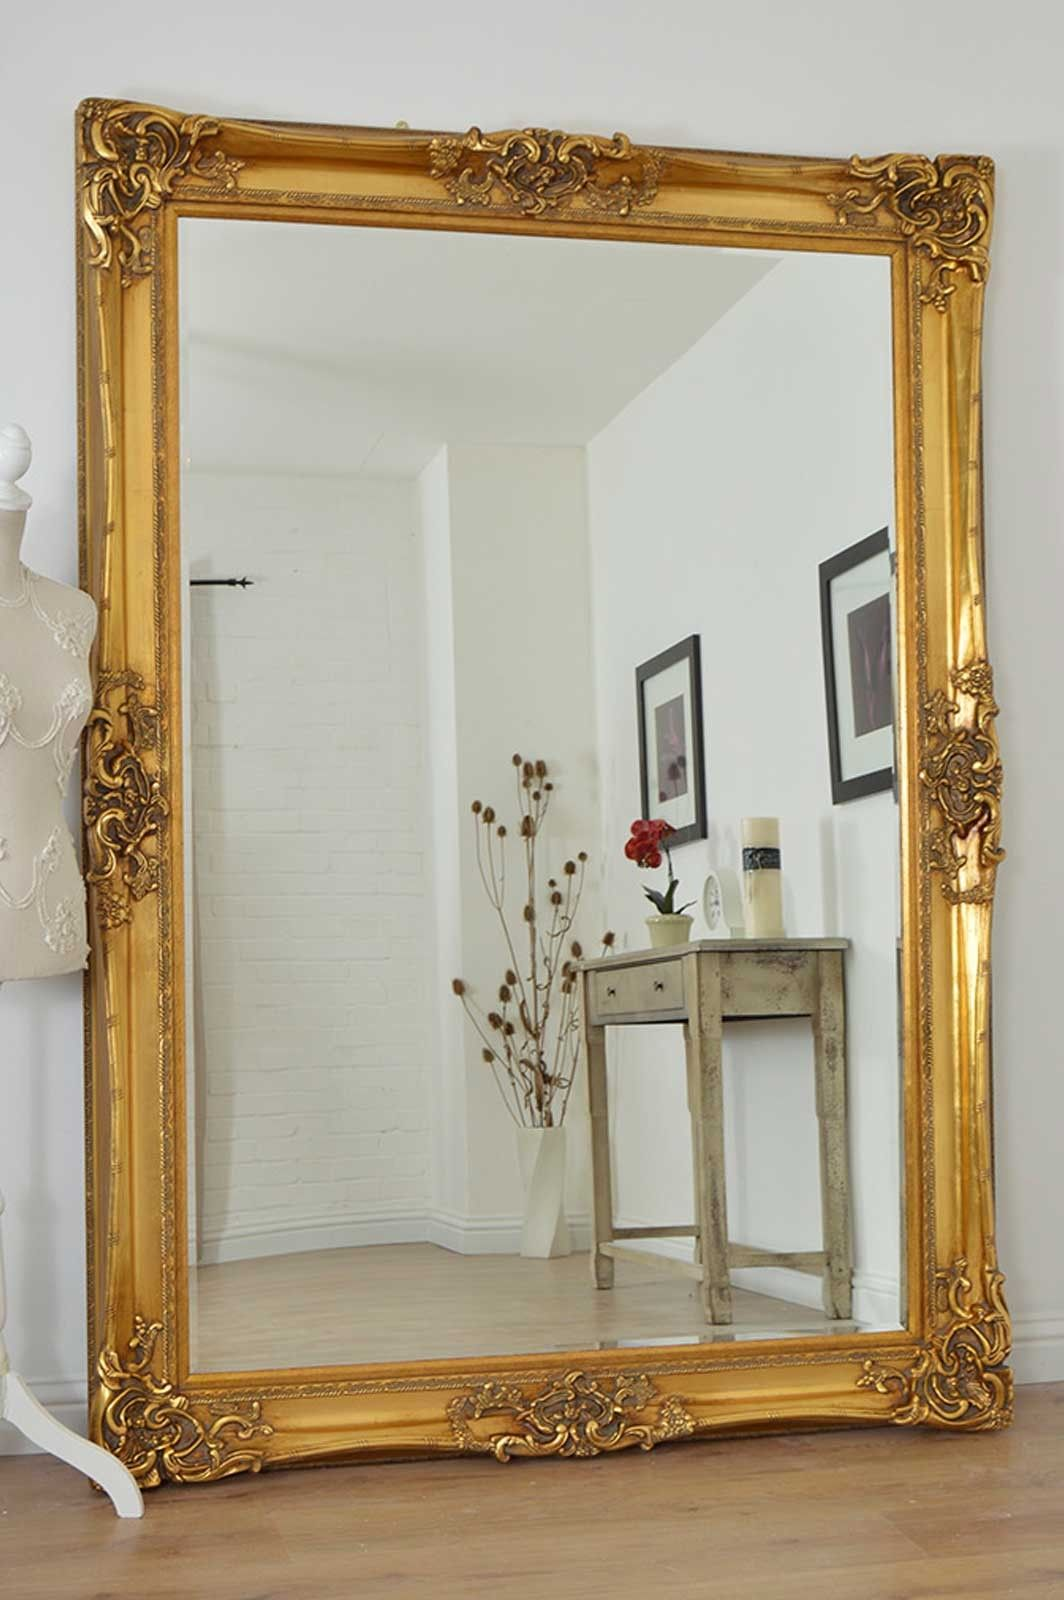 Large gold very ornate antique design wall mirror 7ft x for Mirrors for sale